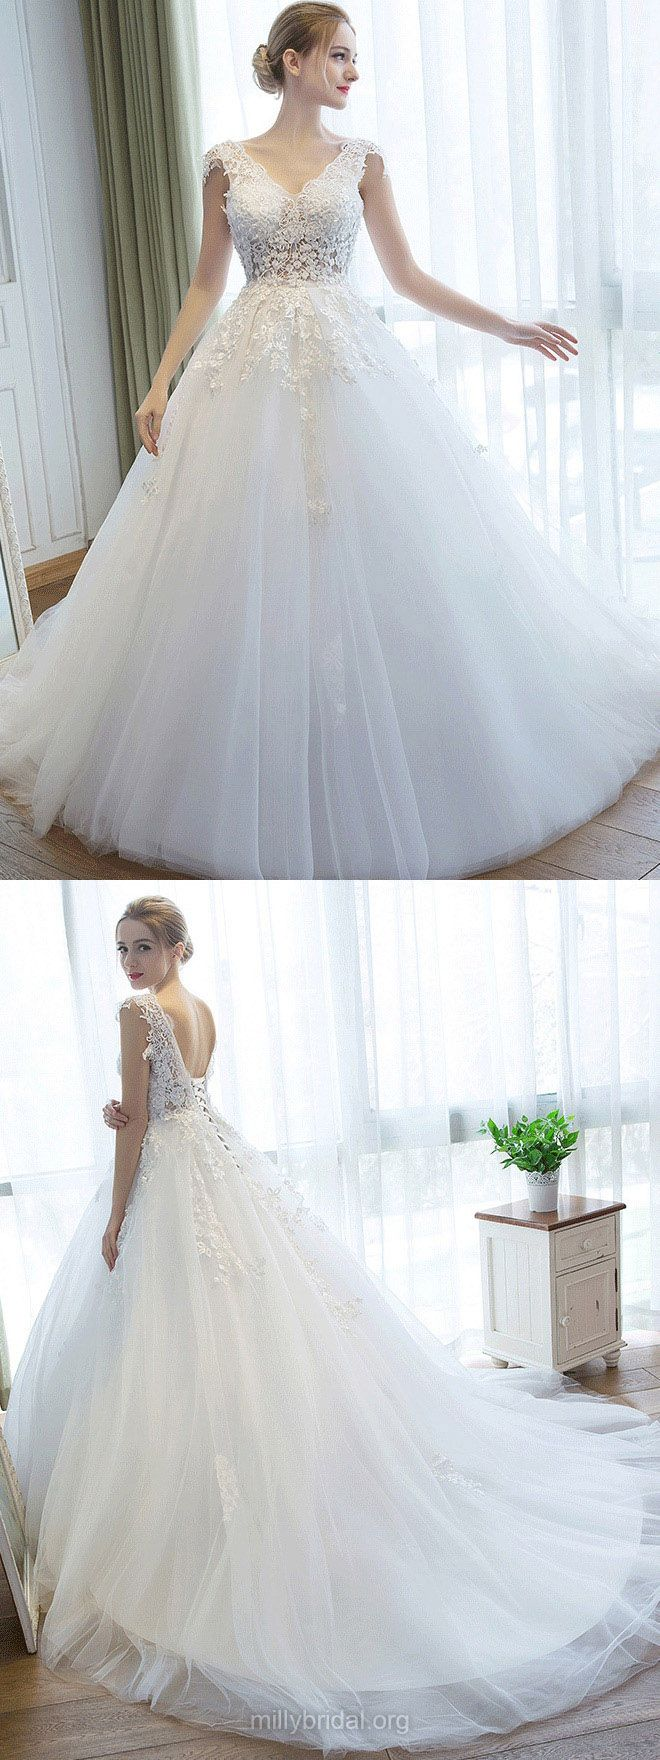 Ball Gown Wedding Dresses V-neck, Lace Wedding Dress Tulle,   Backless Bridal Gowns Modest